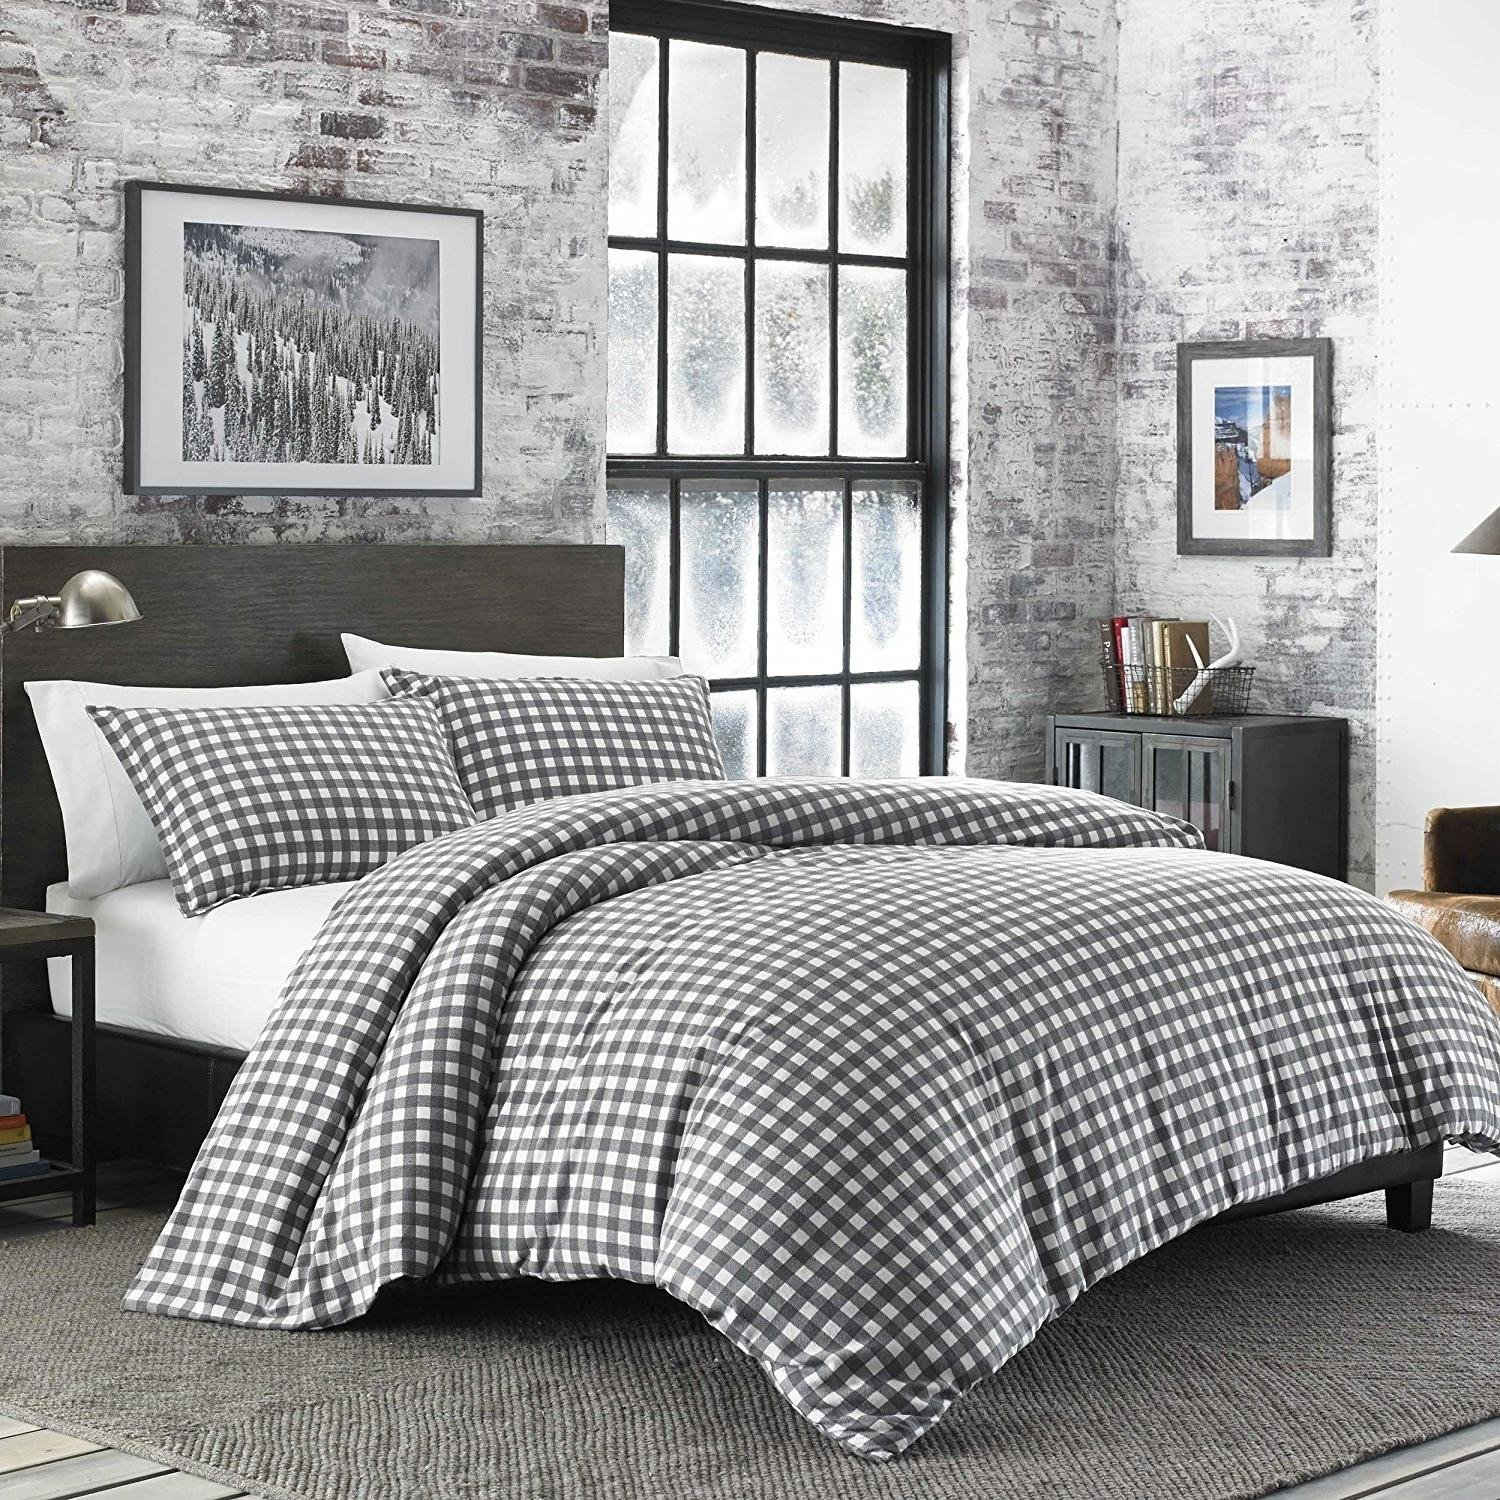 2pc Vibrant Grey White Plaid Twin Size Duvet Cover Set, Tartan Madras Squared Checked Woods, Check Lodge Cabin Themed Country Checkered Lumberjack Bedding, Cotton Flannel